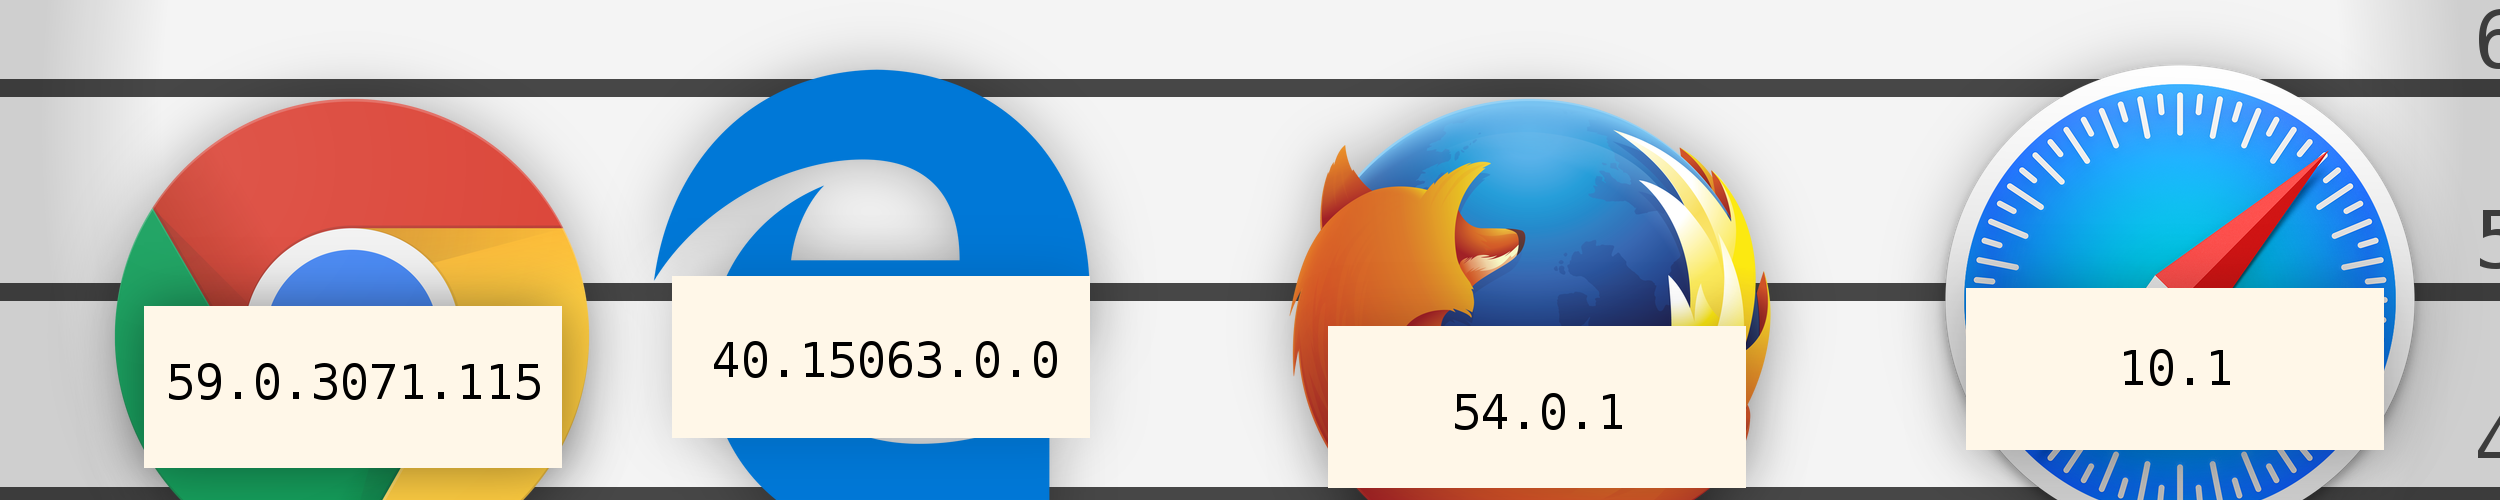 A lineup of browser logos